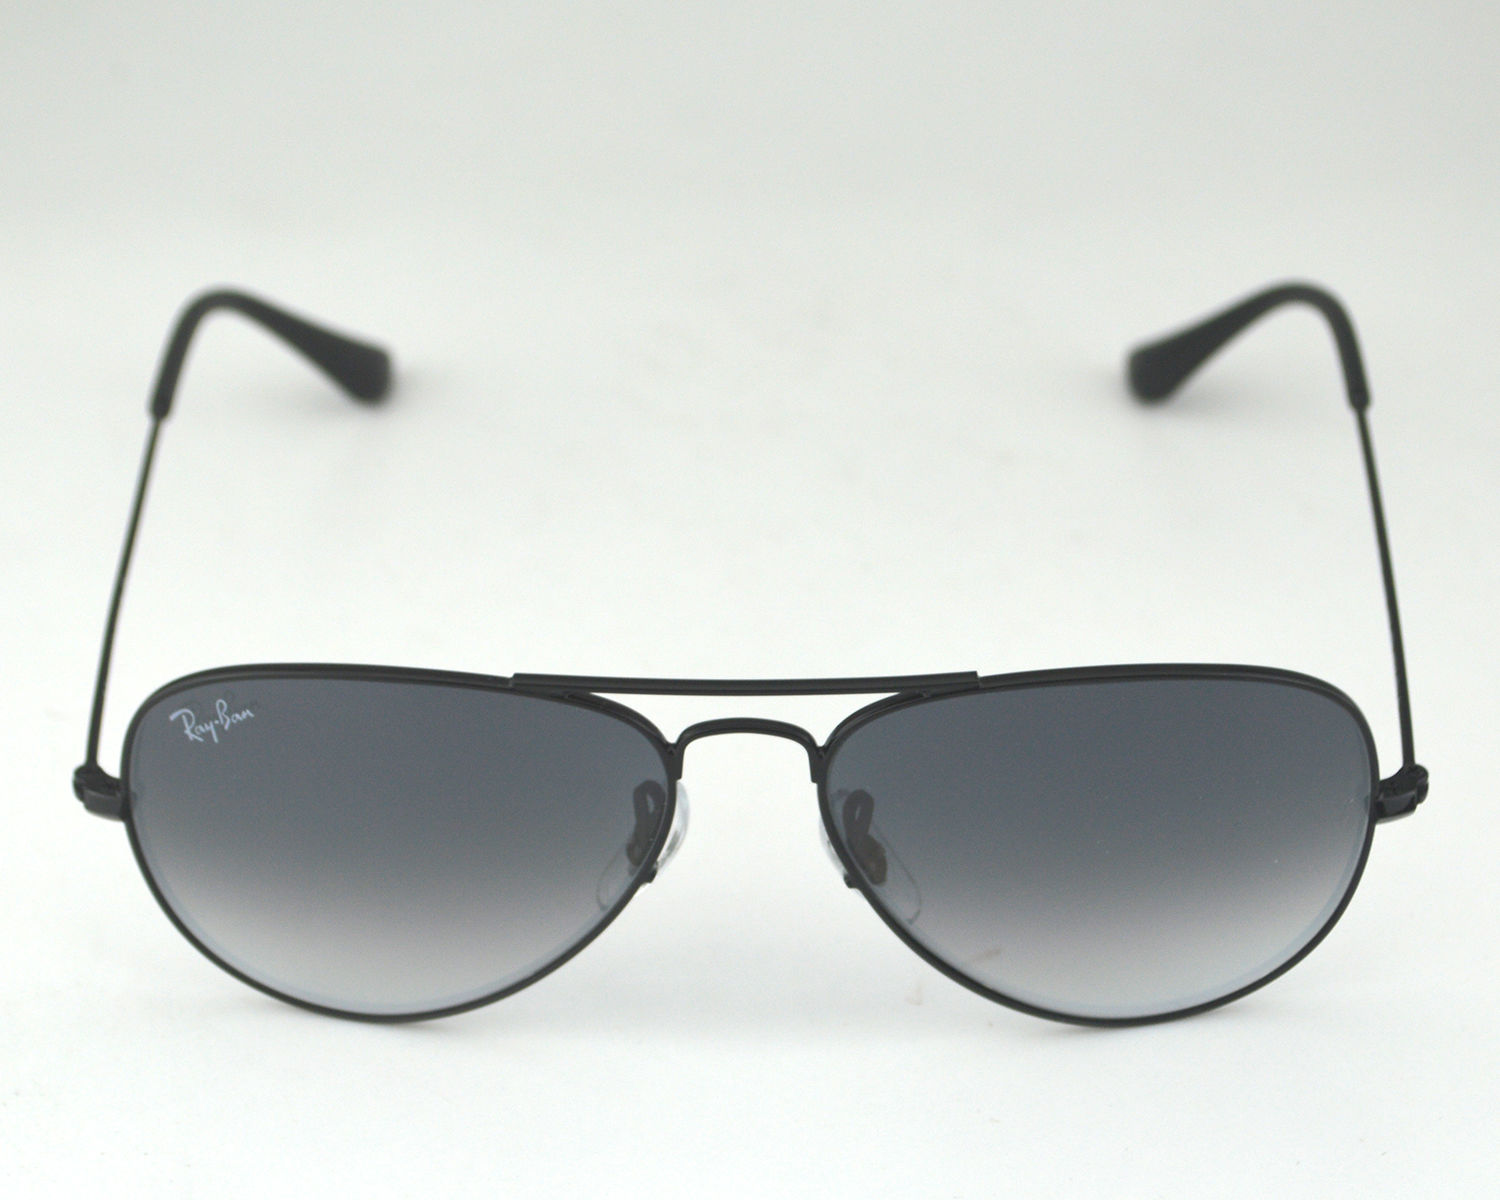 827b3693cf8ee Ray-Ban RB3025 Aviator 002 32 Black Metal Frame Polarized Blue Gray  Gradient Lens Unisex Sunglasses 55mm